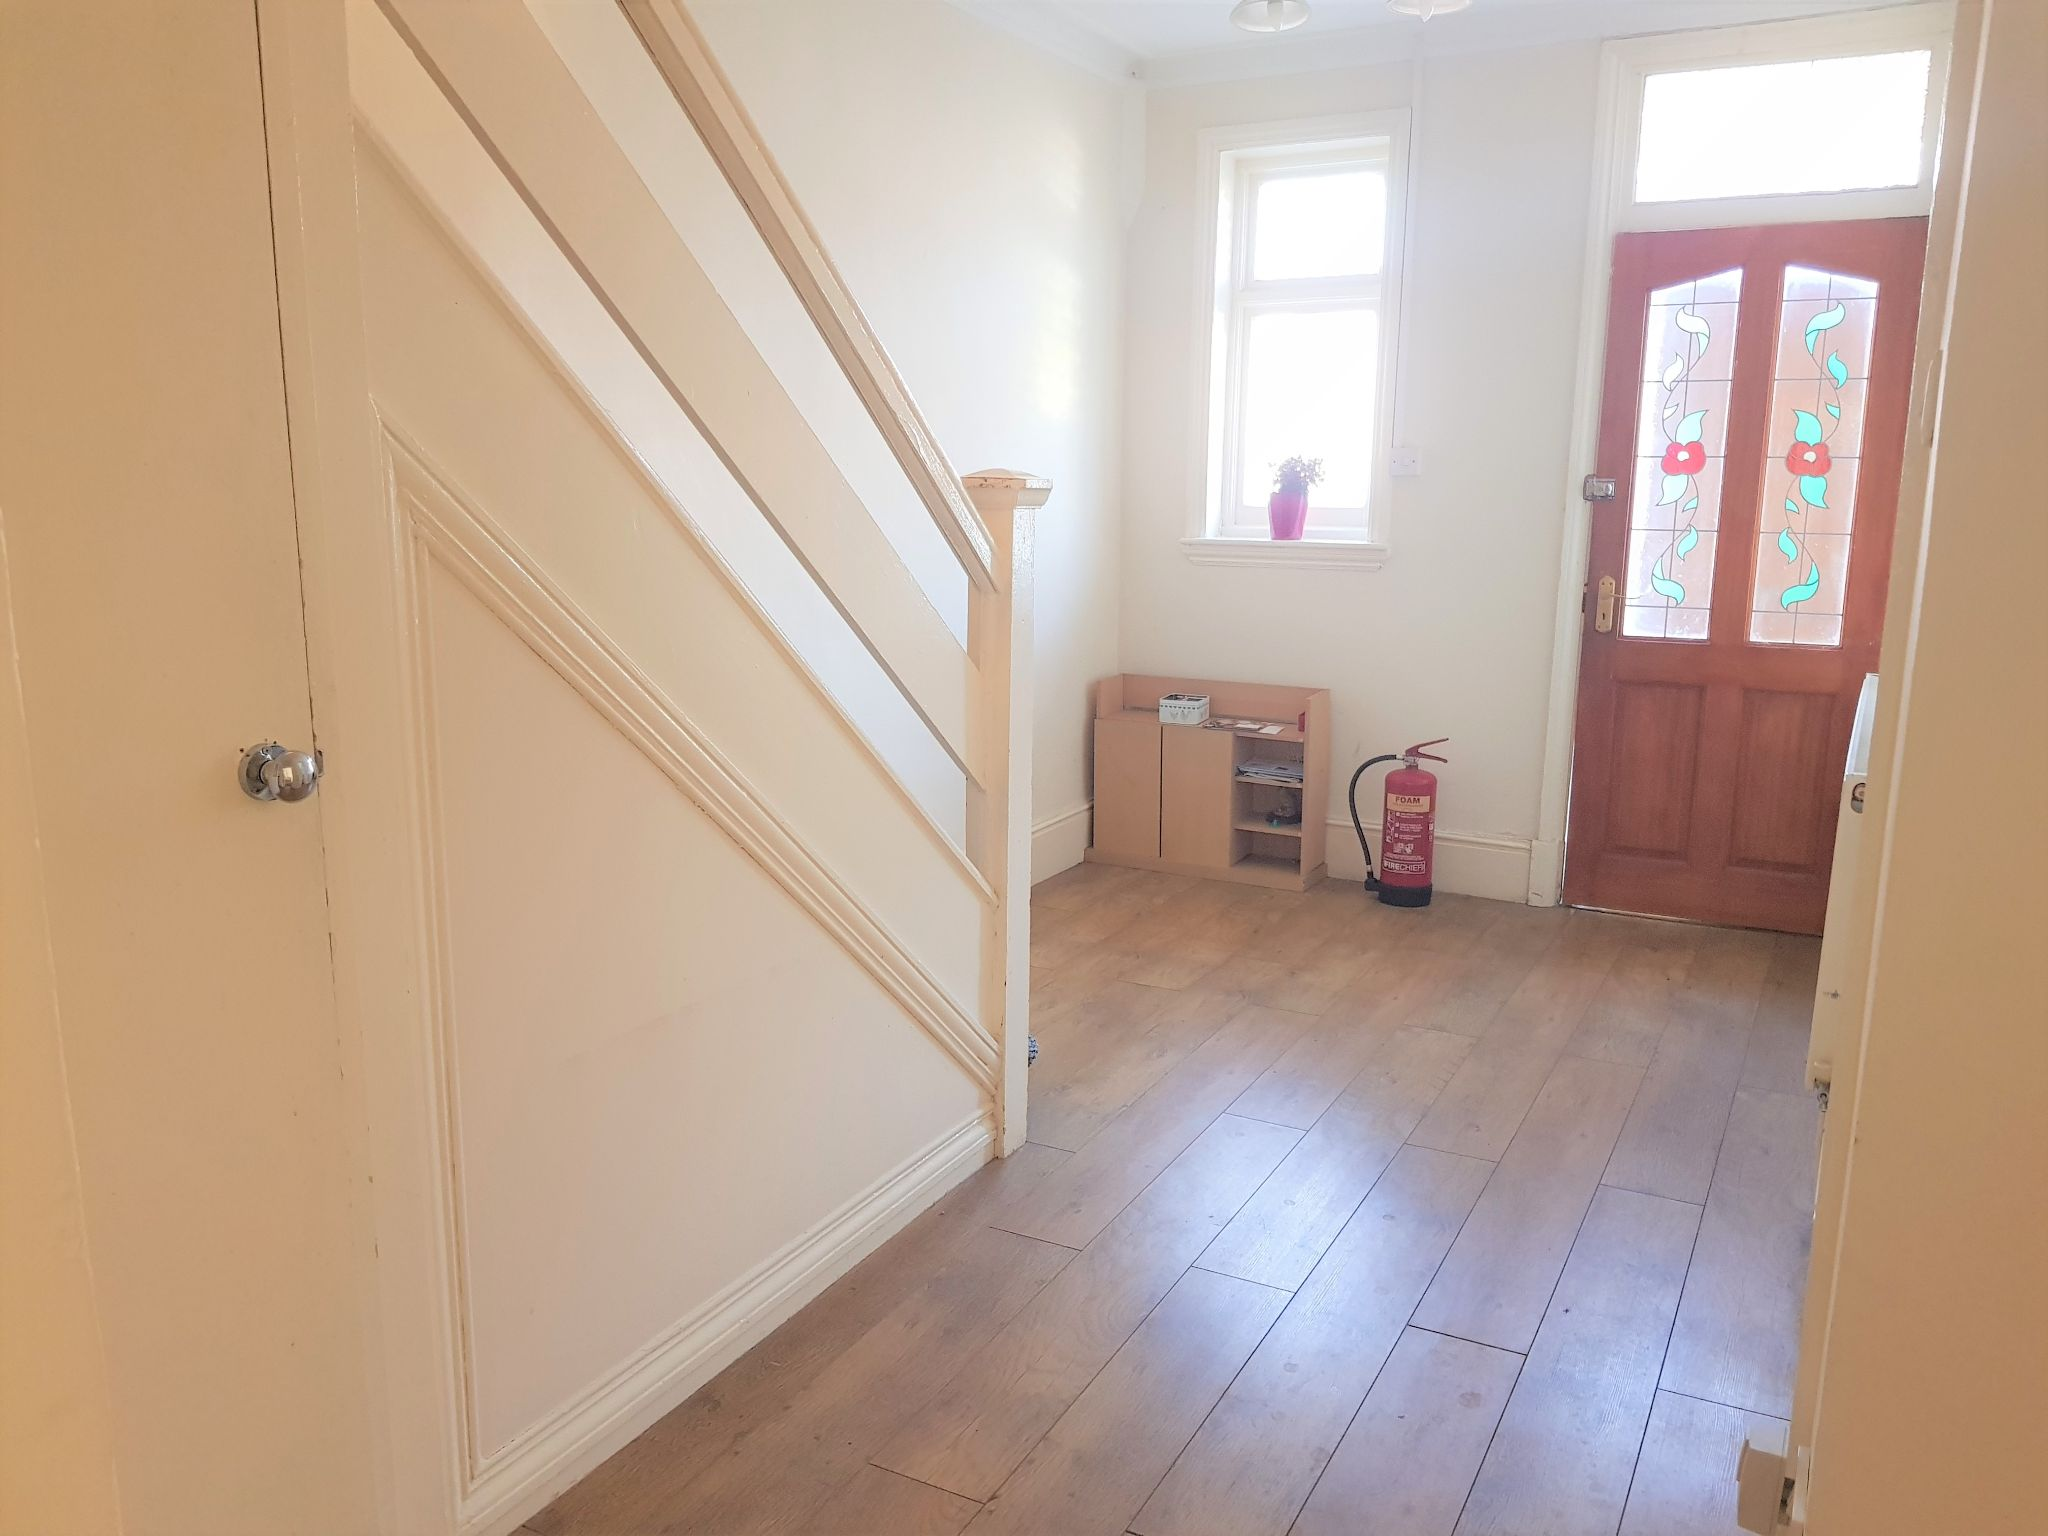 1 Bed Shared House To Rent - Ground floor entrance hall